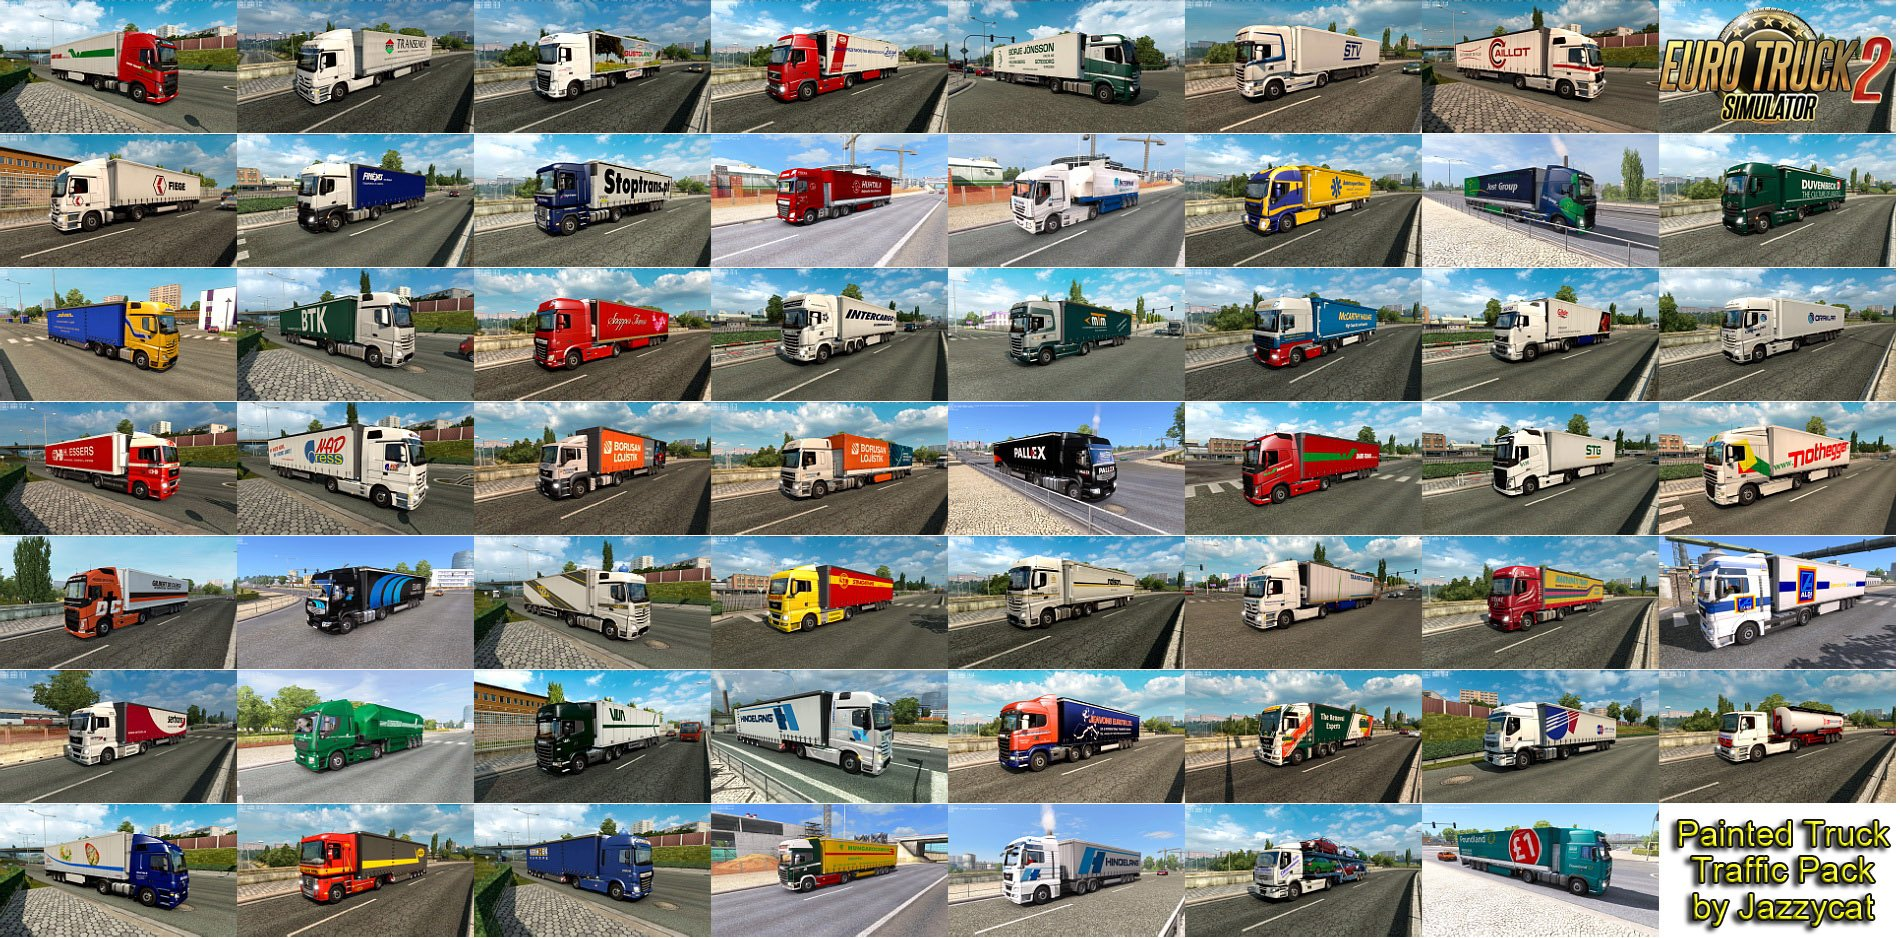 Painted Truck Traffic Pack v5.9 by Jazzycat